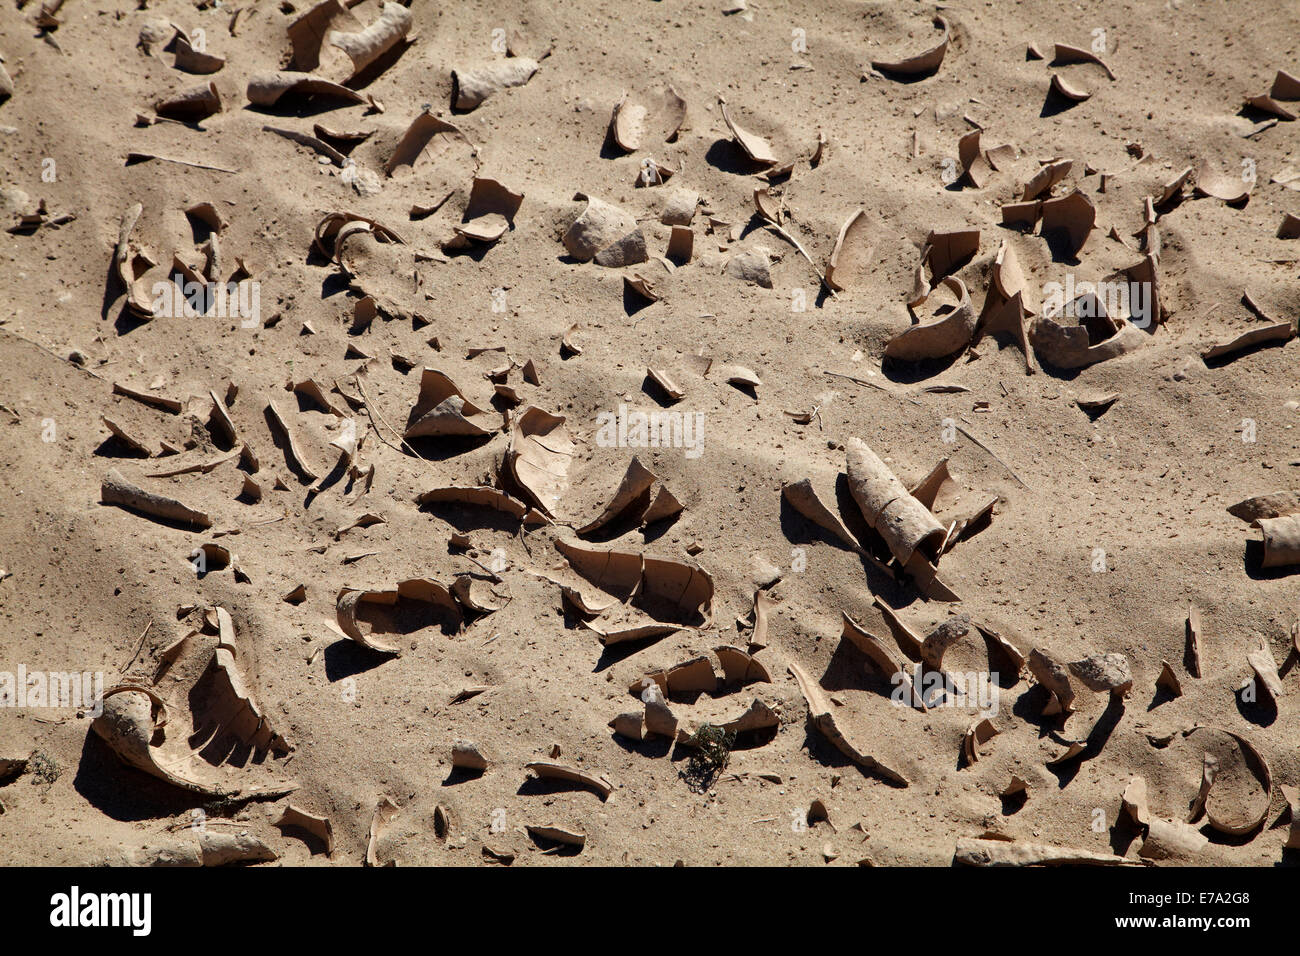 Dried mud on salt Pan, Panamint Valley, Death Valley National Park, Mojave Desert, California, USA - Stock Image